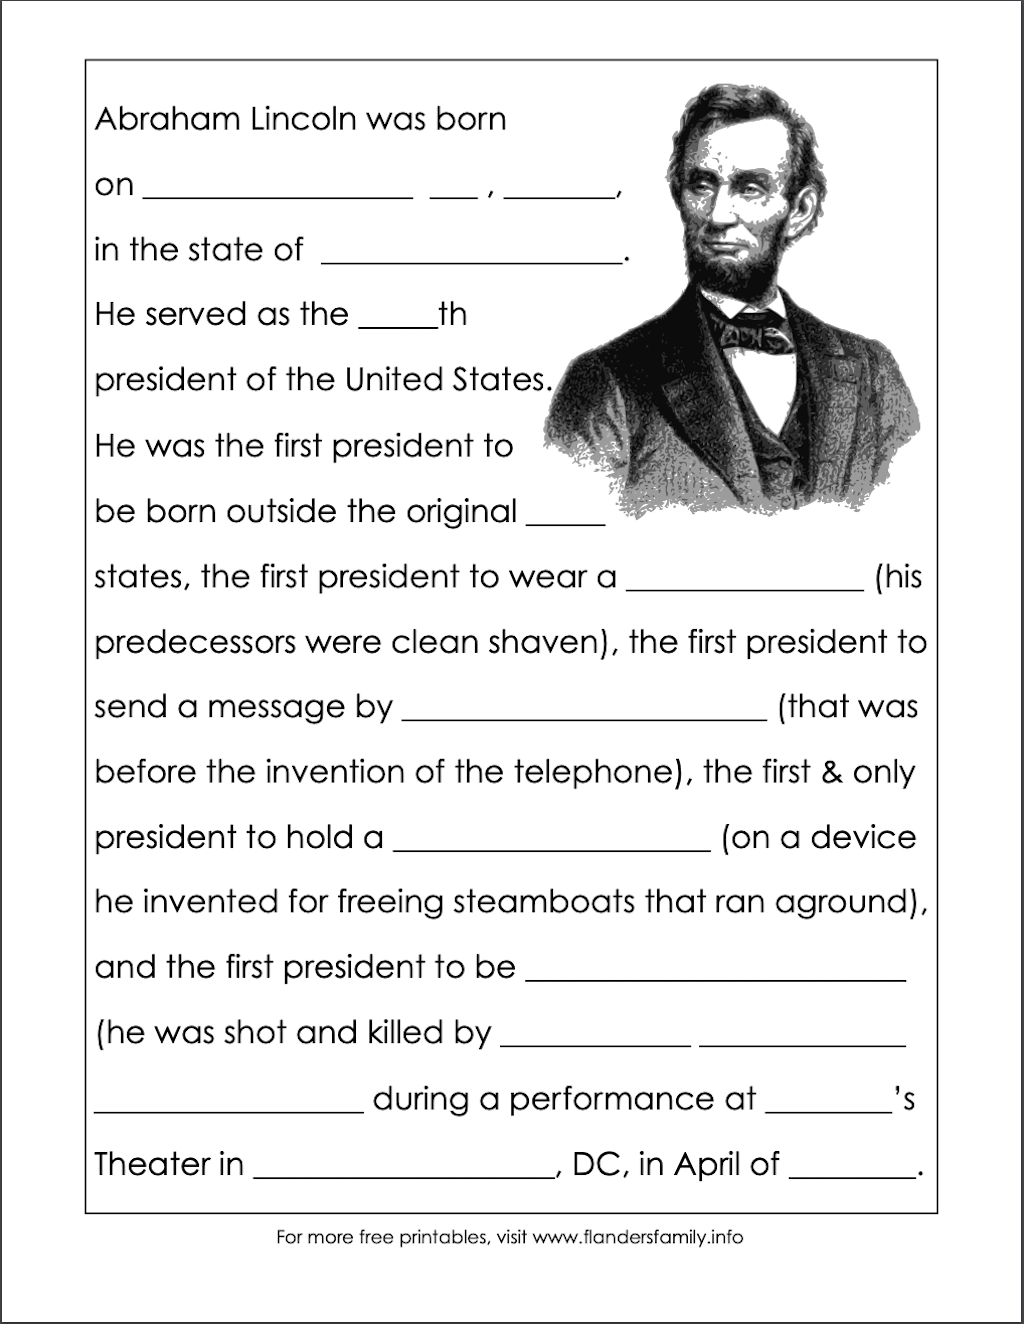 Free Printable Abraham Lincoln Worksheet